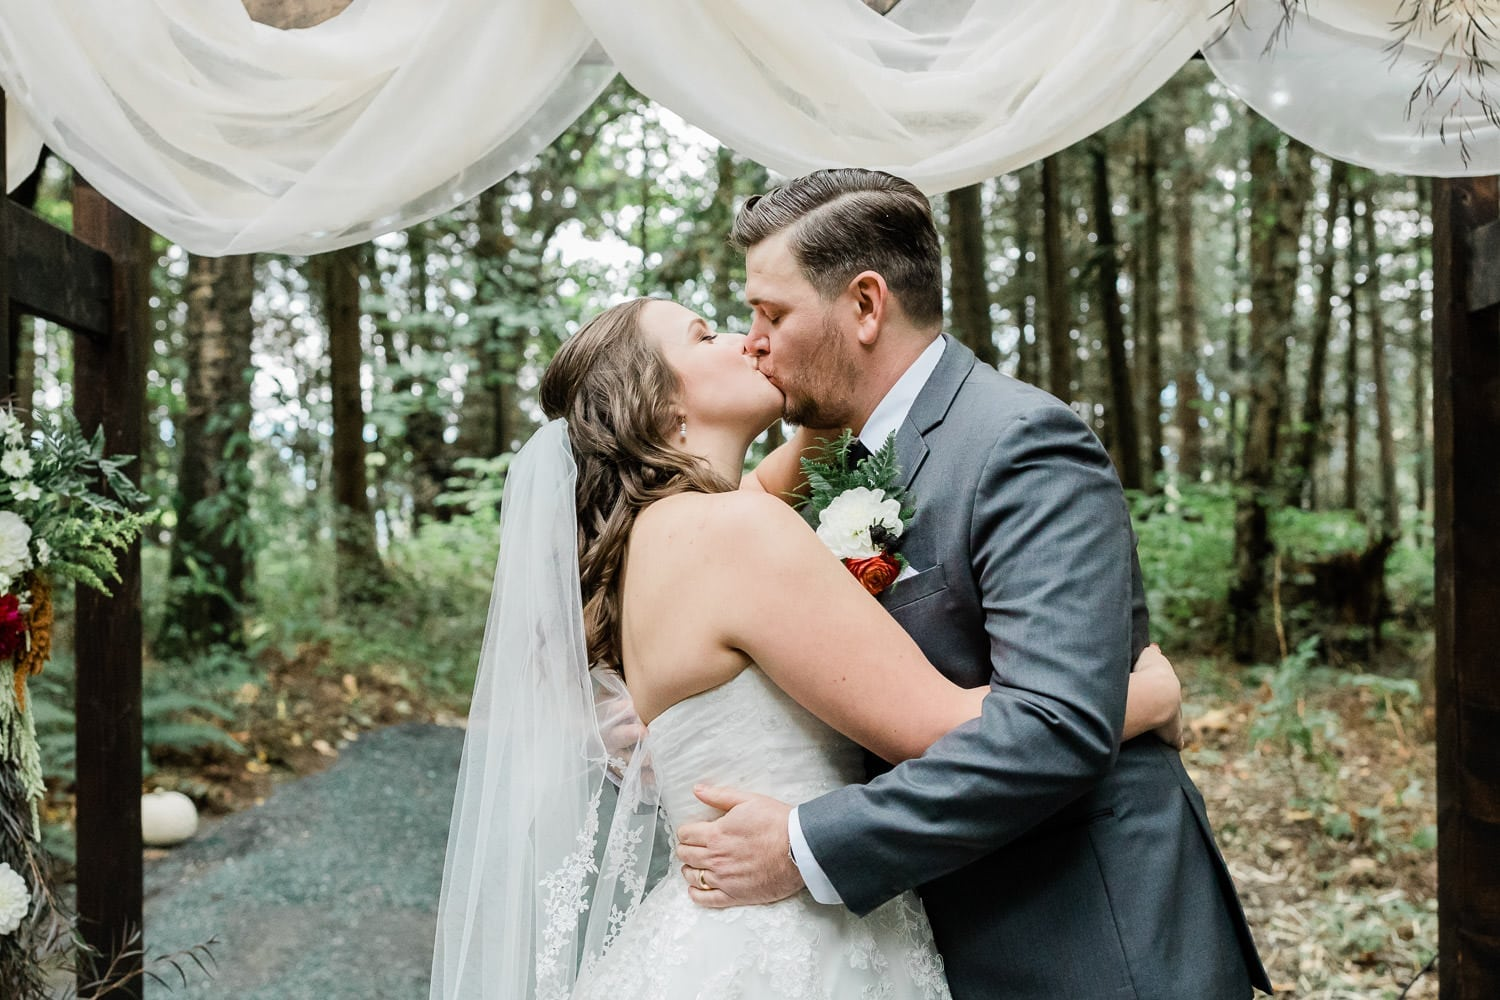 Rustic wedding ceremony photo in Langley and first kiss | Vancouver wedding photographer